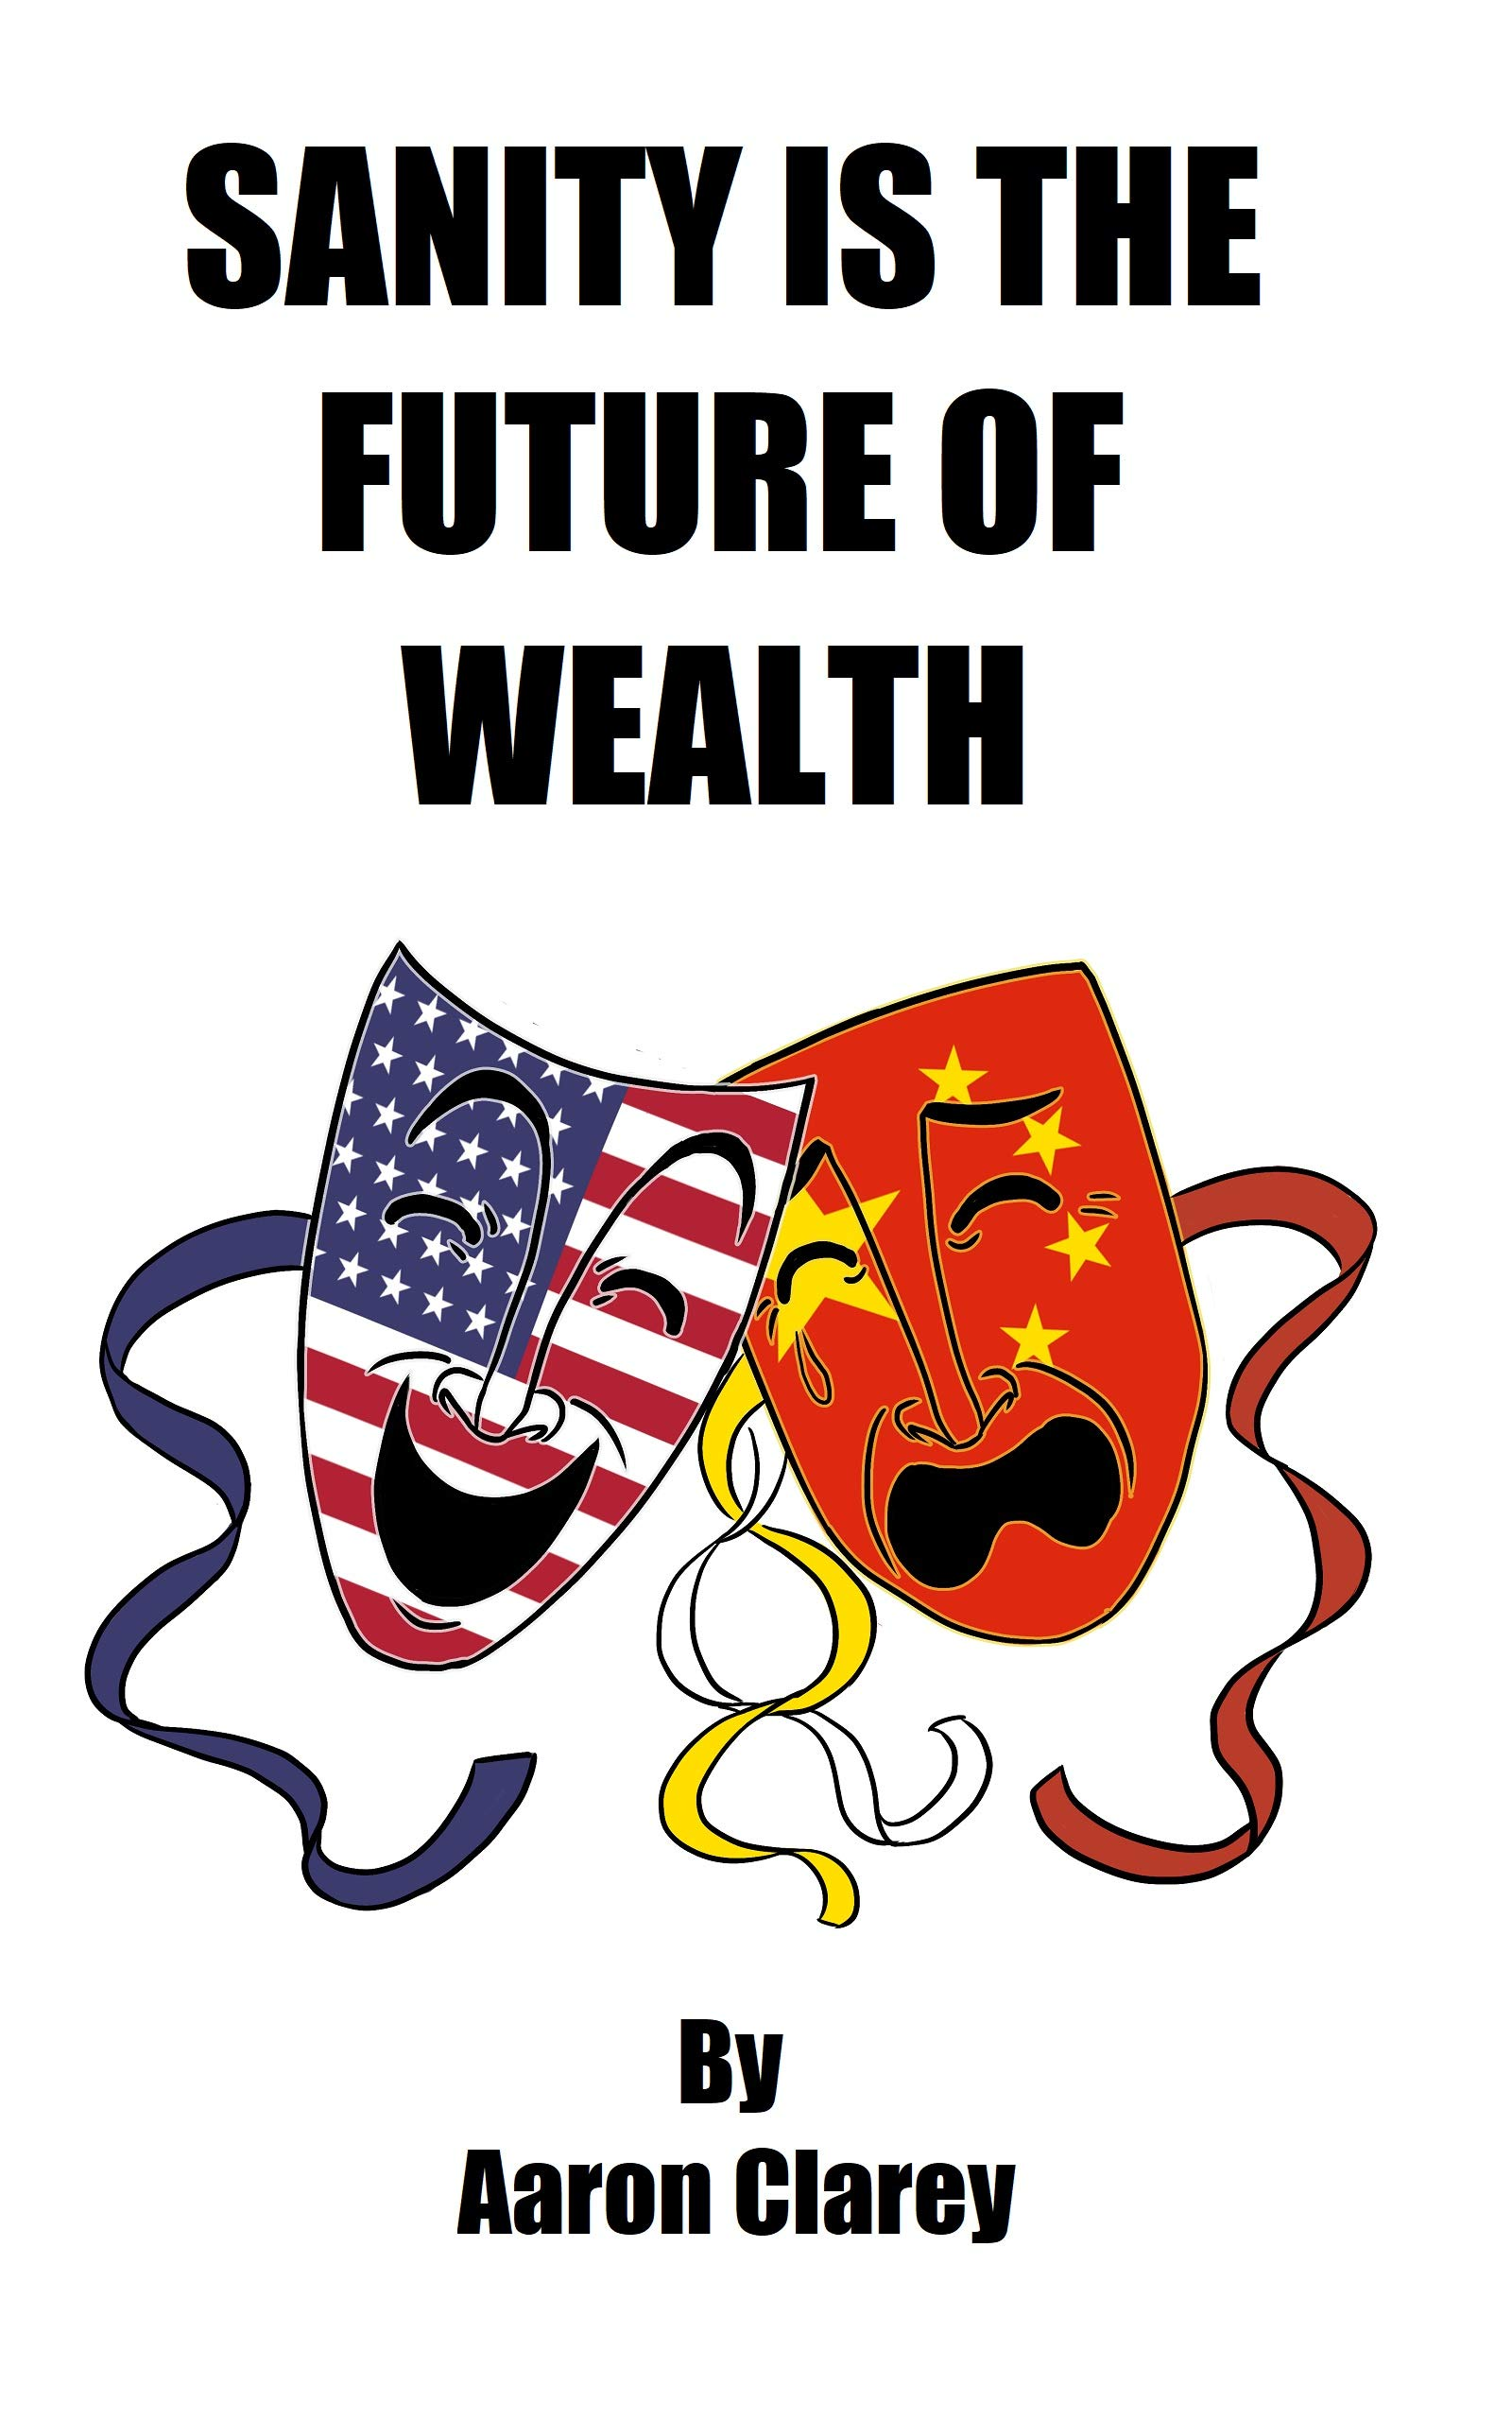 Sanity is the Future of Wealth: Why Leftists are Doomed to Poverty and Insanity